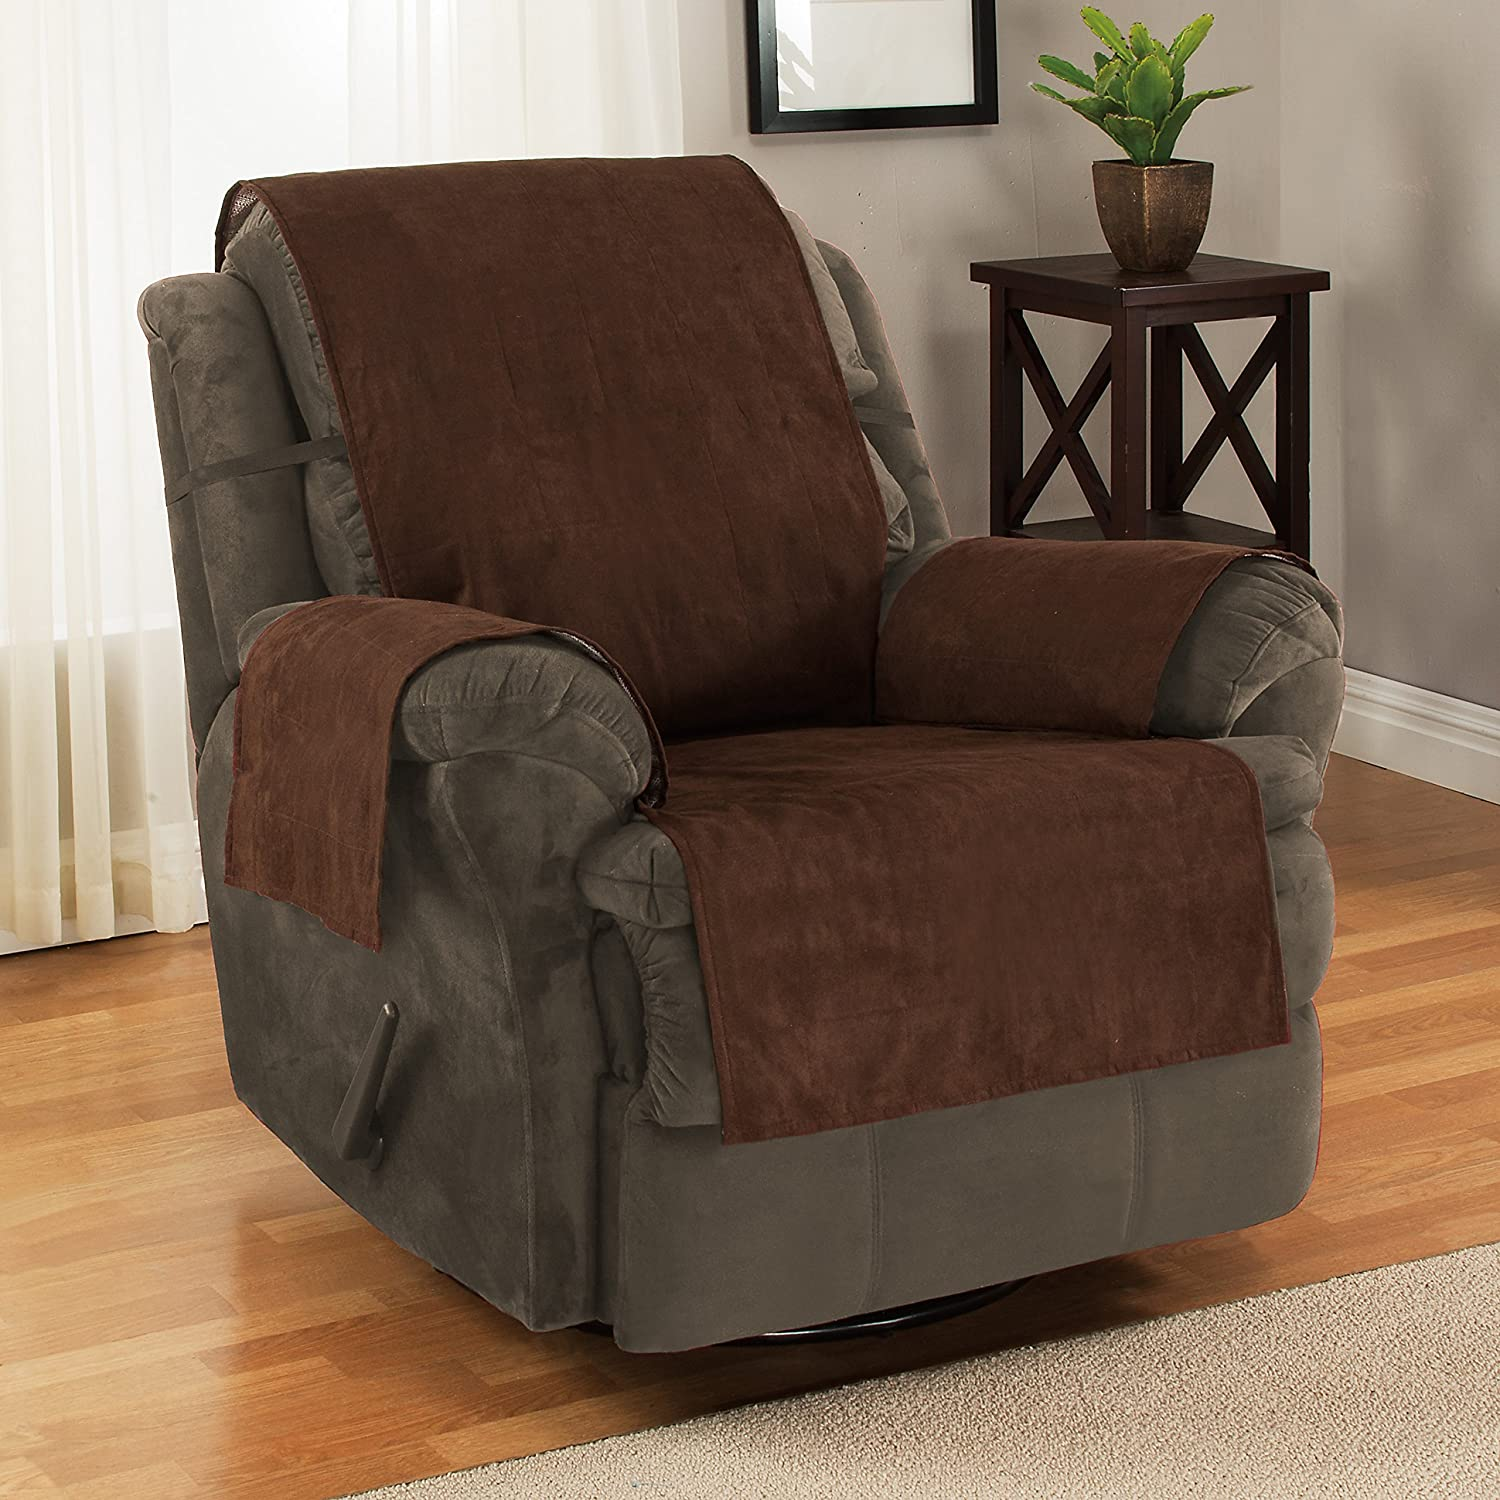 Amazon.com Furniture Fresh - New and Improved Anti-Slip Grip Furniture Protector with Stay Put Straps and Water Resistant Microsuede Fabric ( Recliner ... & Amazon.com: Furniture Fresh - New and Improved Anti-Slip Grip ... islam-shia.org